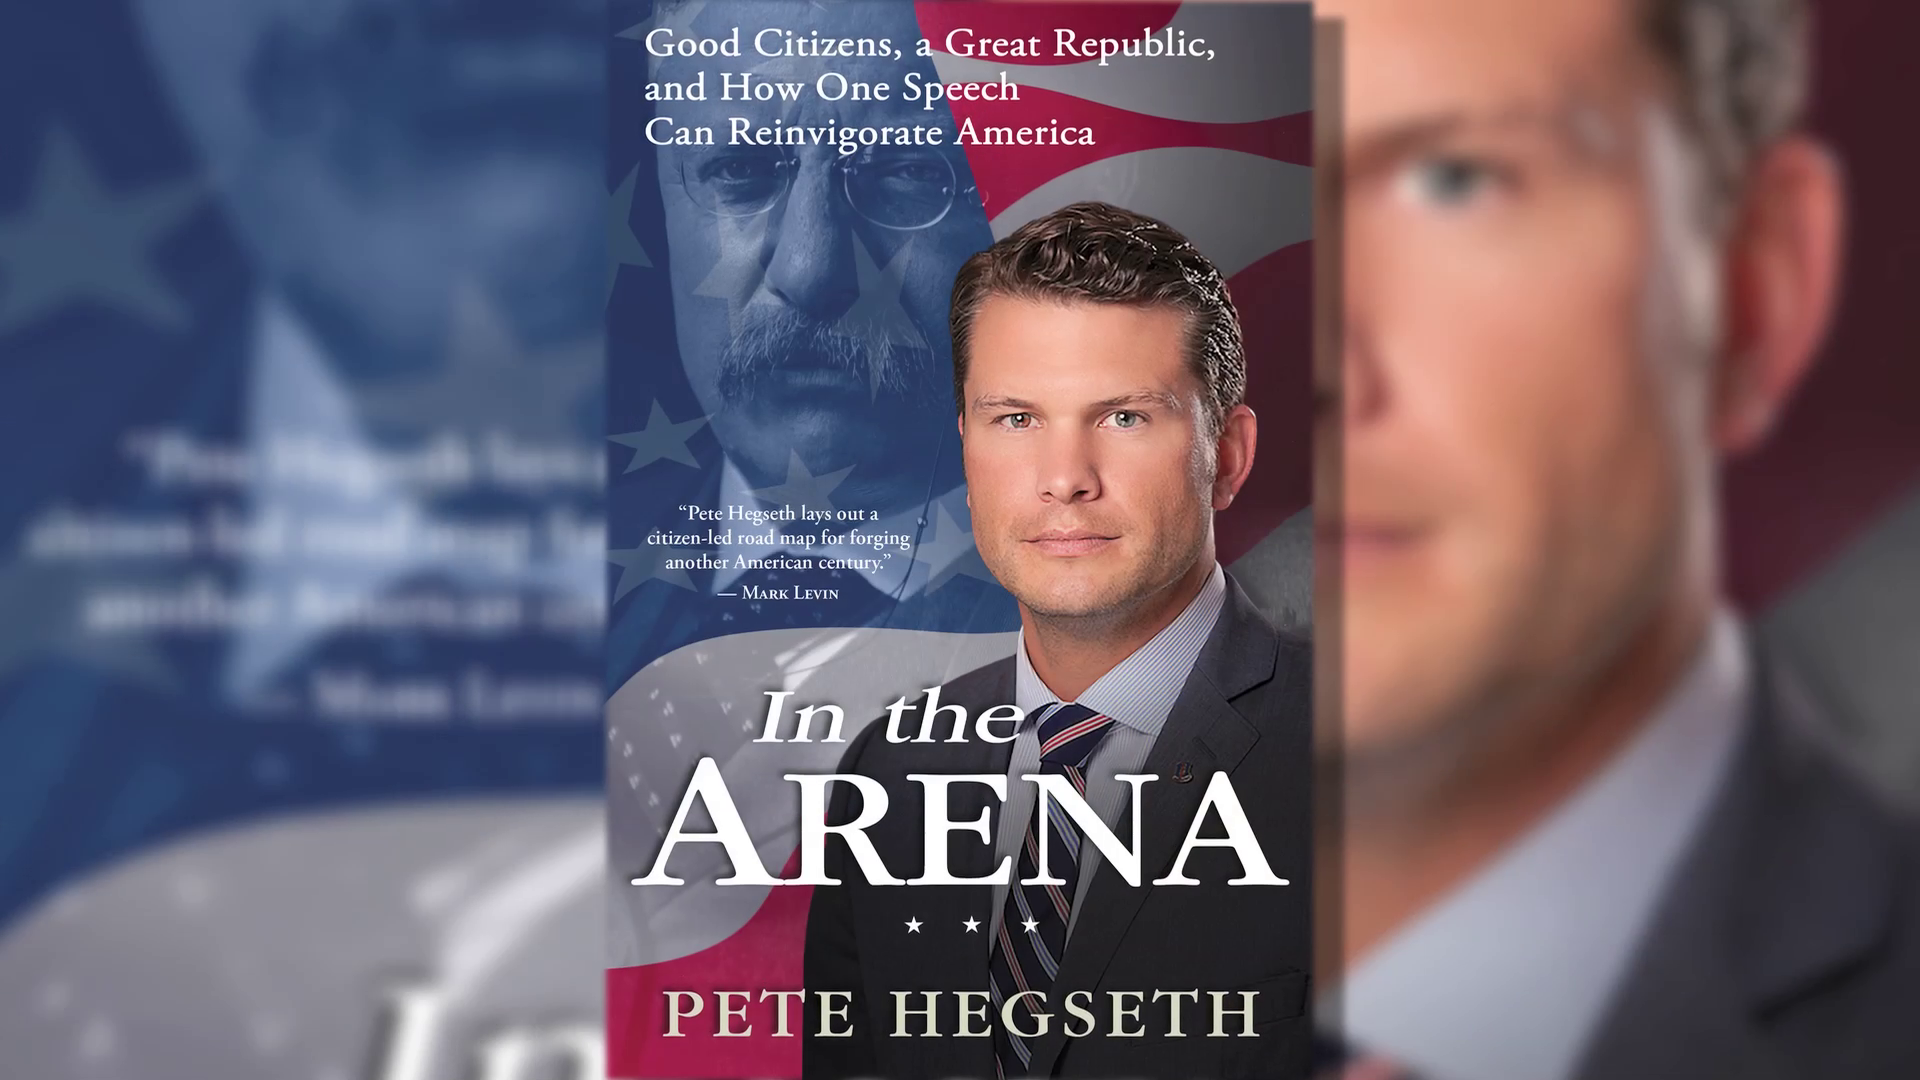 Fox News Contributor Pete Hegseth finds motivation IN THE ARENA